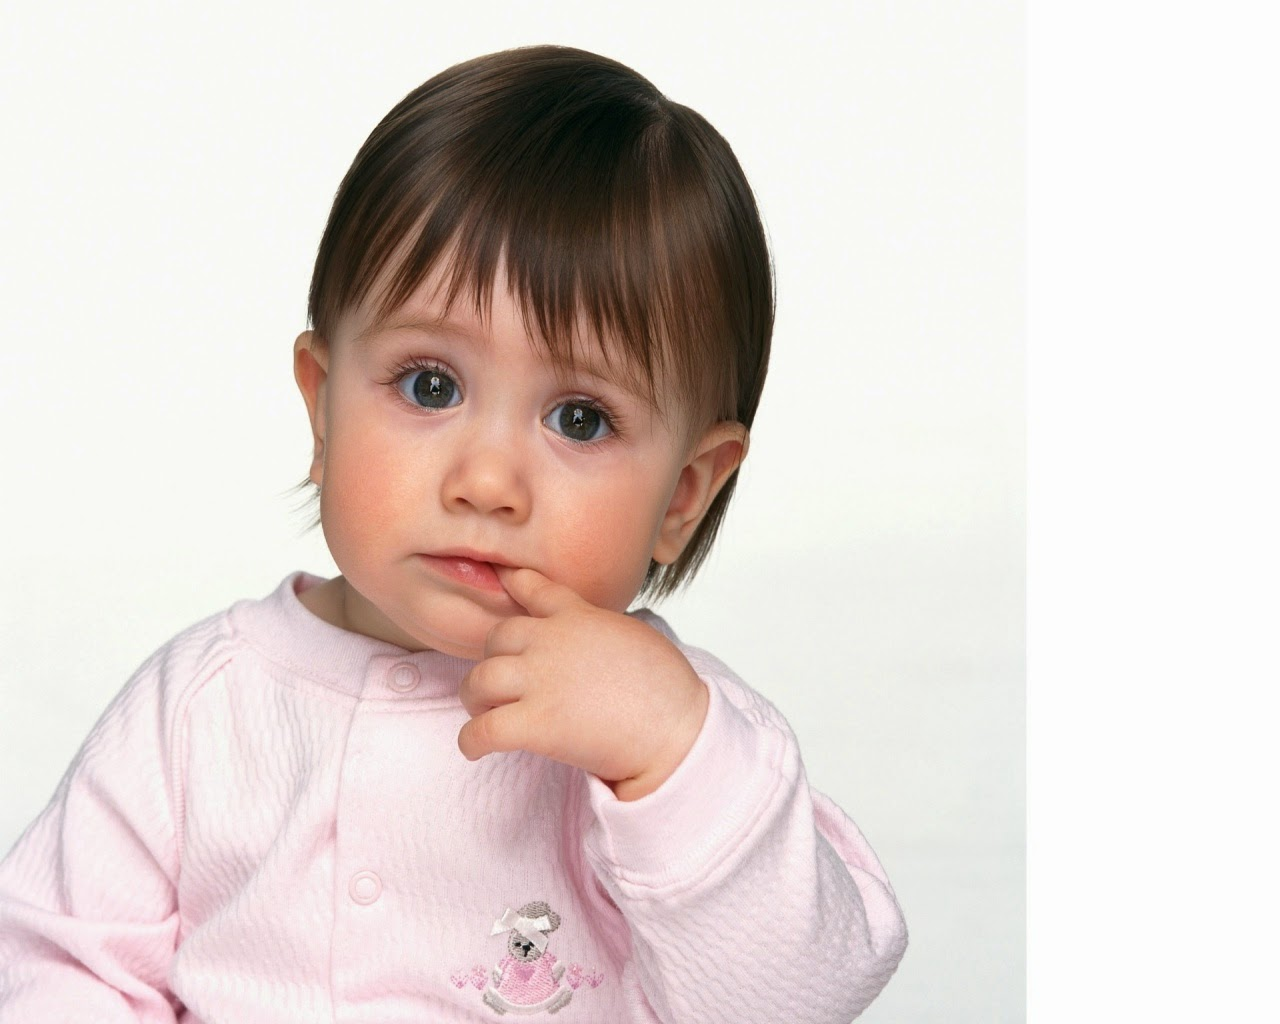 Beautiful Cute Baby Wallpapers | Most beautiful places in the